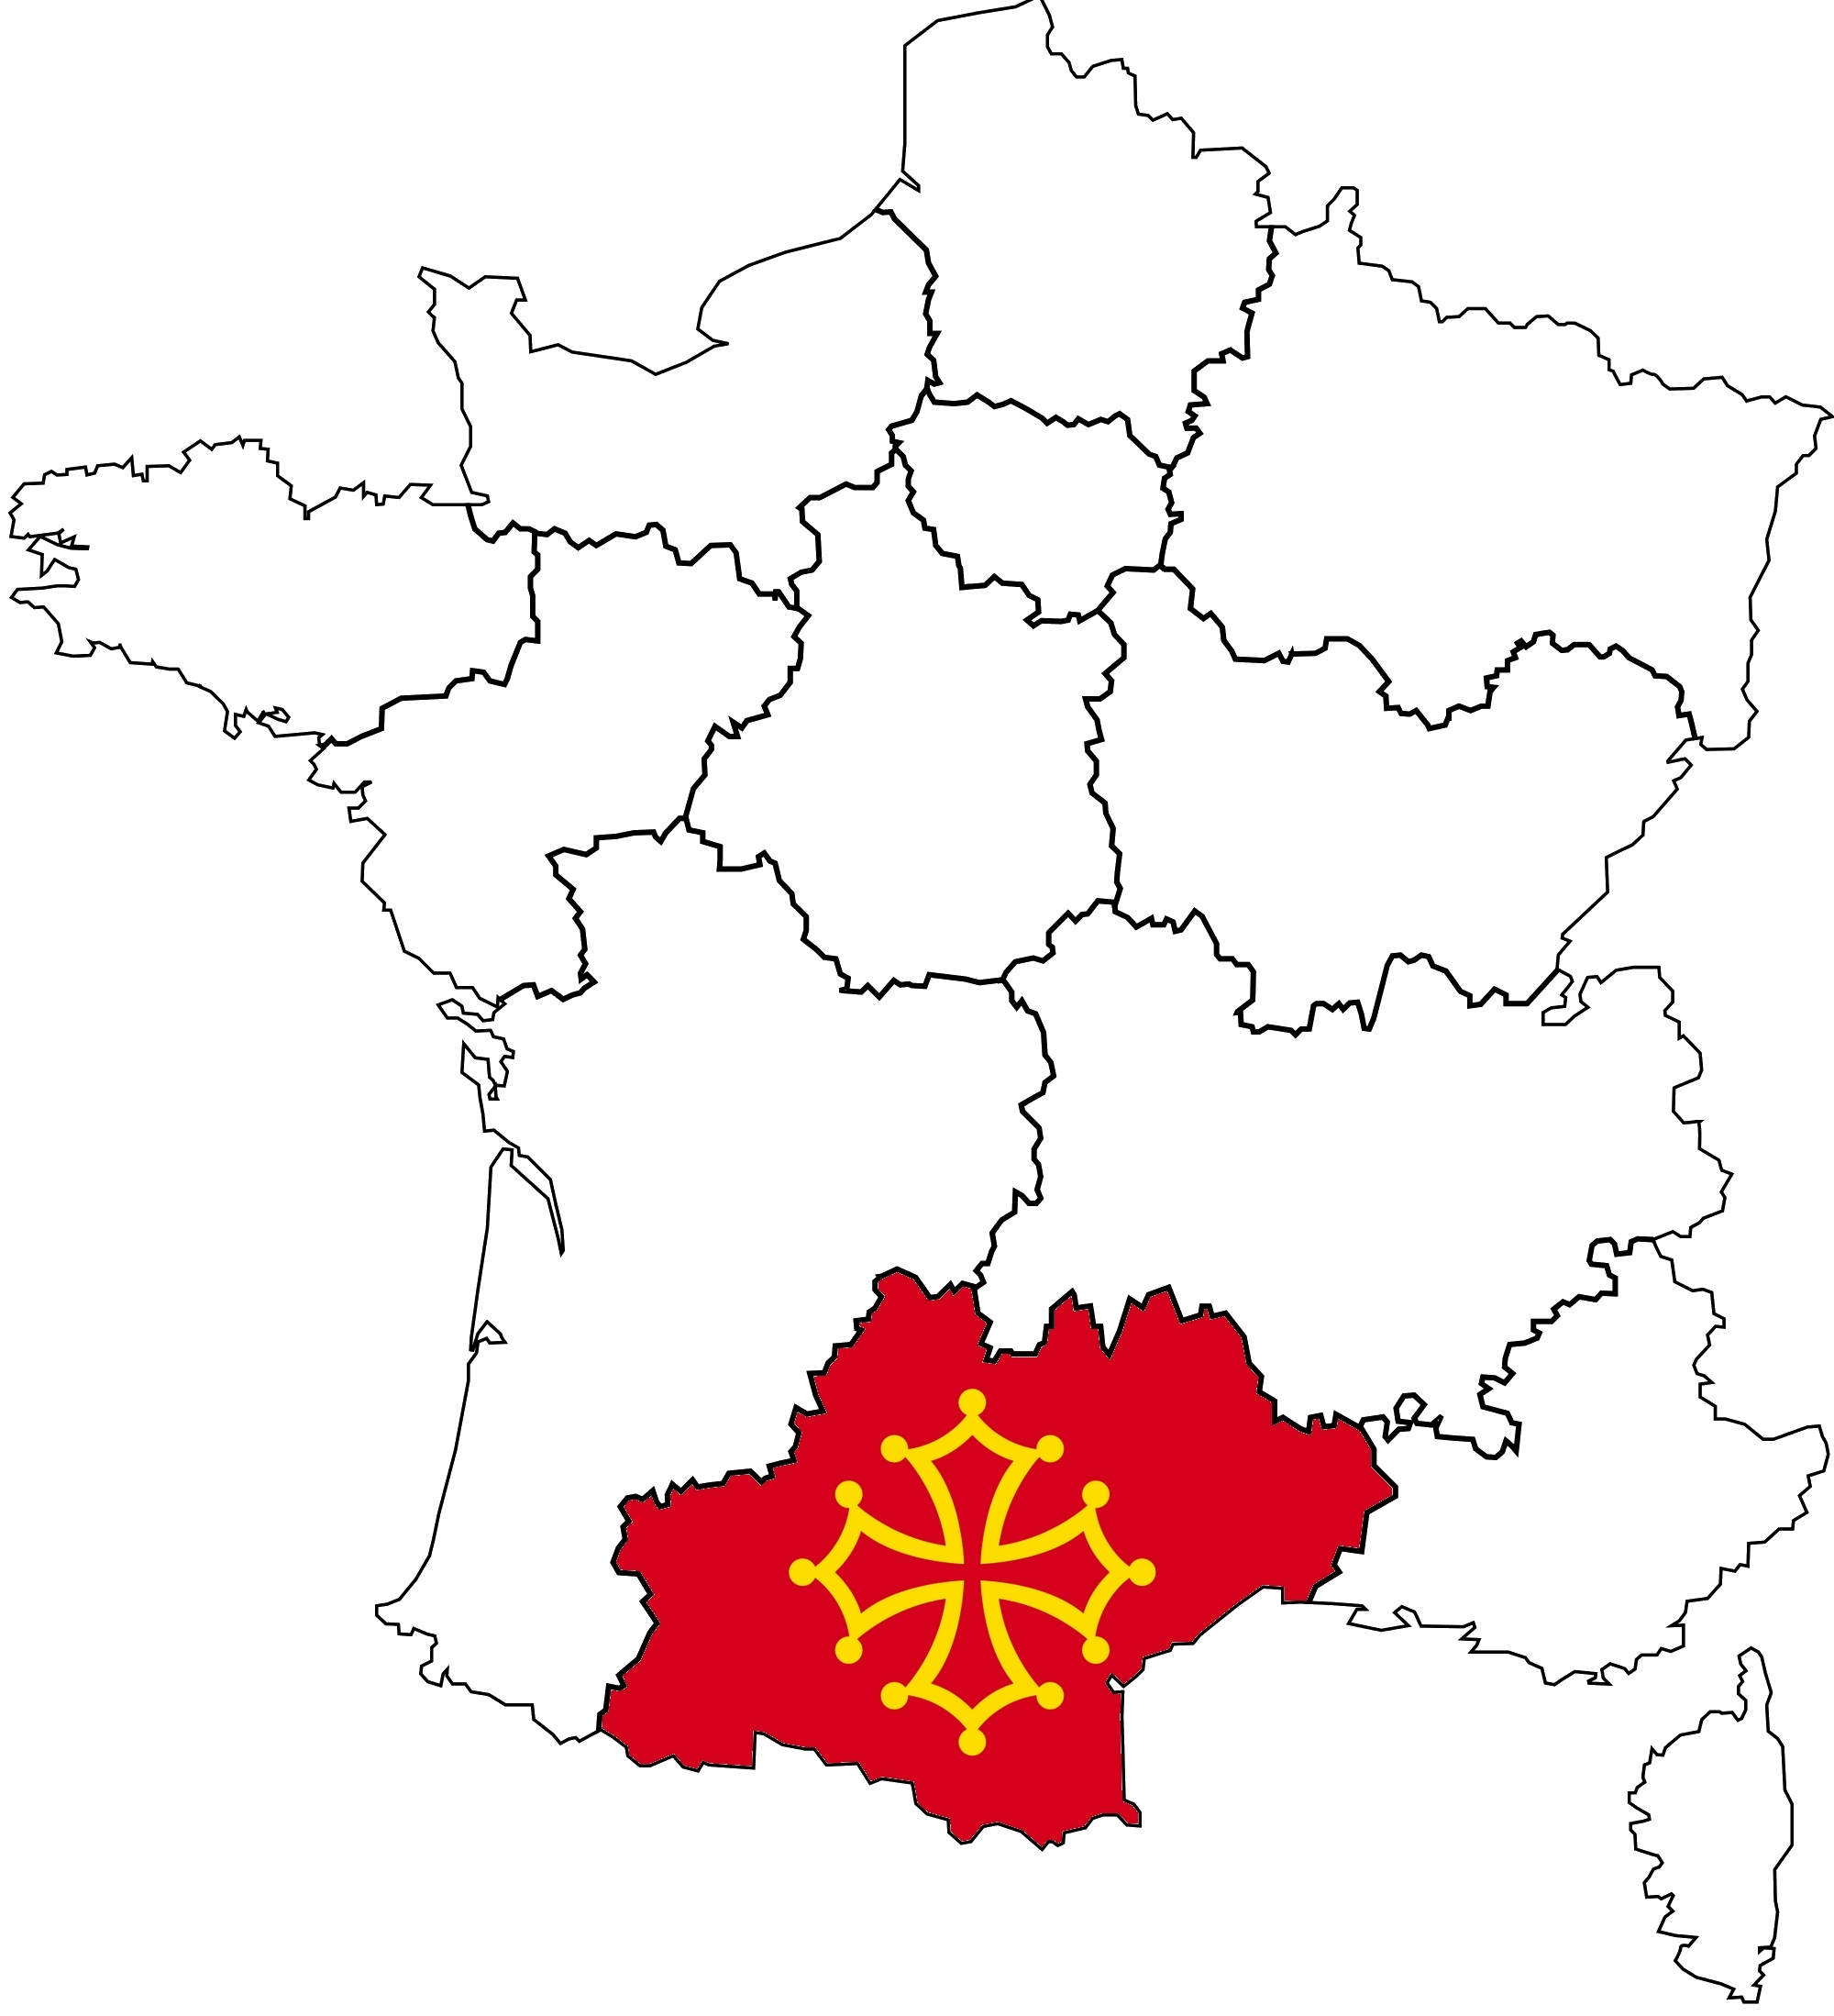 MyFrenchLife™ - MyFrenchLife.org - Occitania - Occitanie - regions of France - France Map